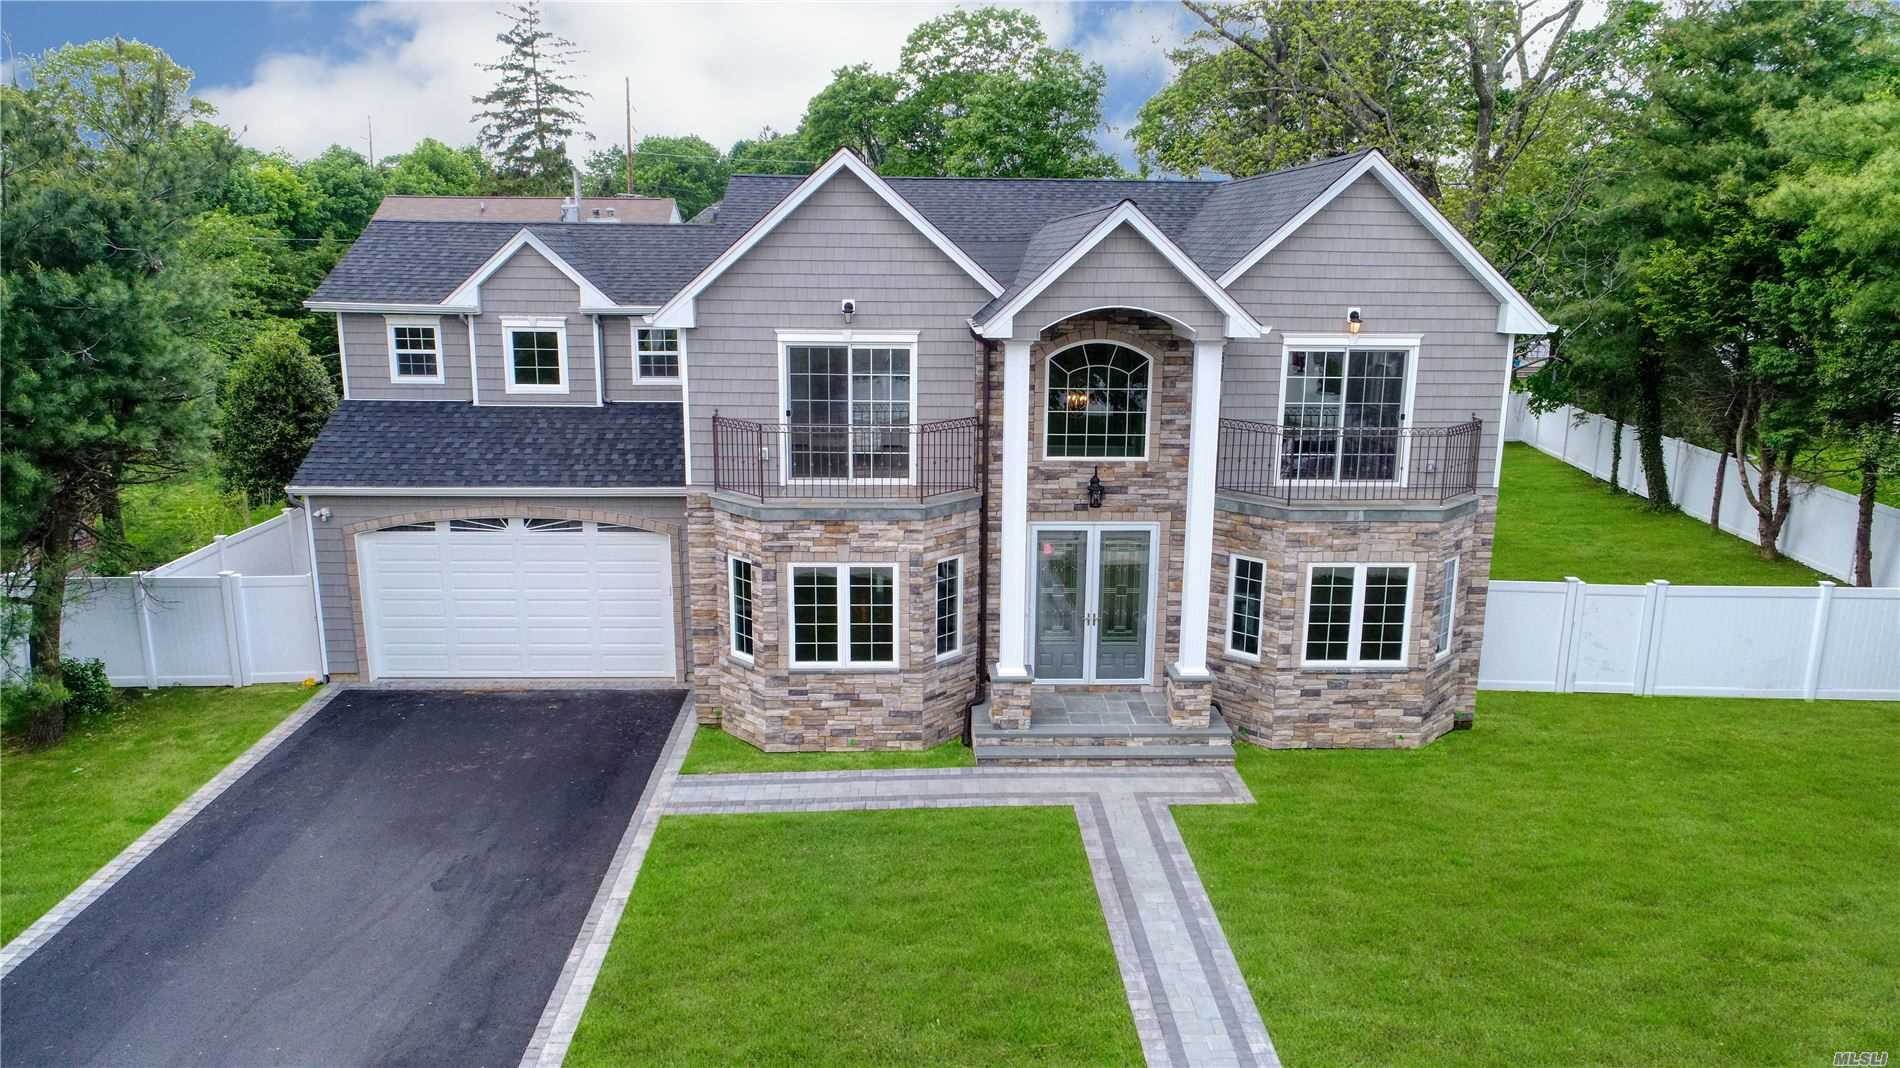 43 Narcissus Dr - Syosset, New York